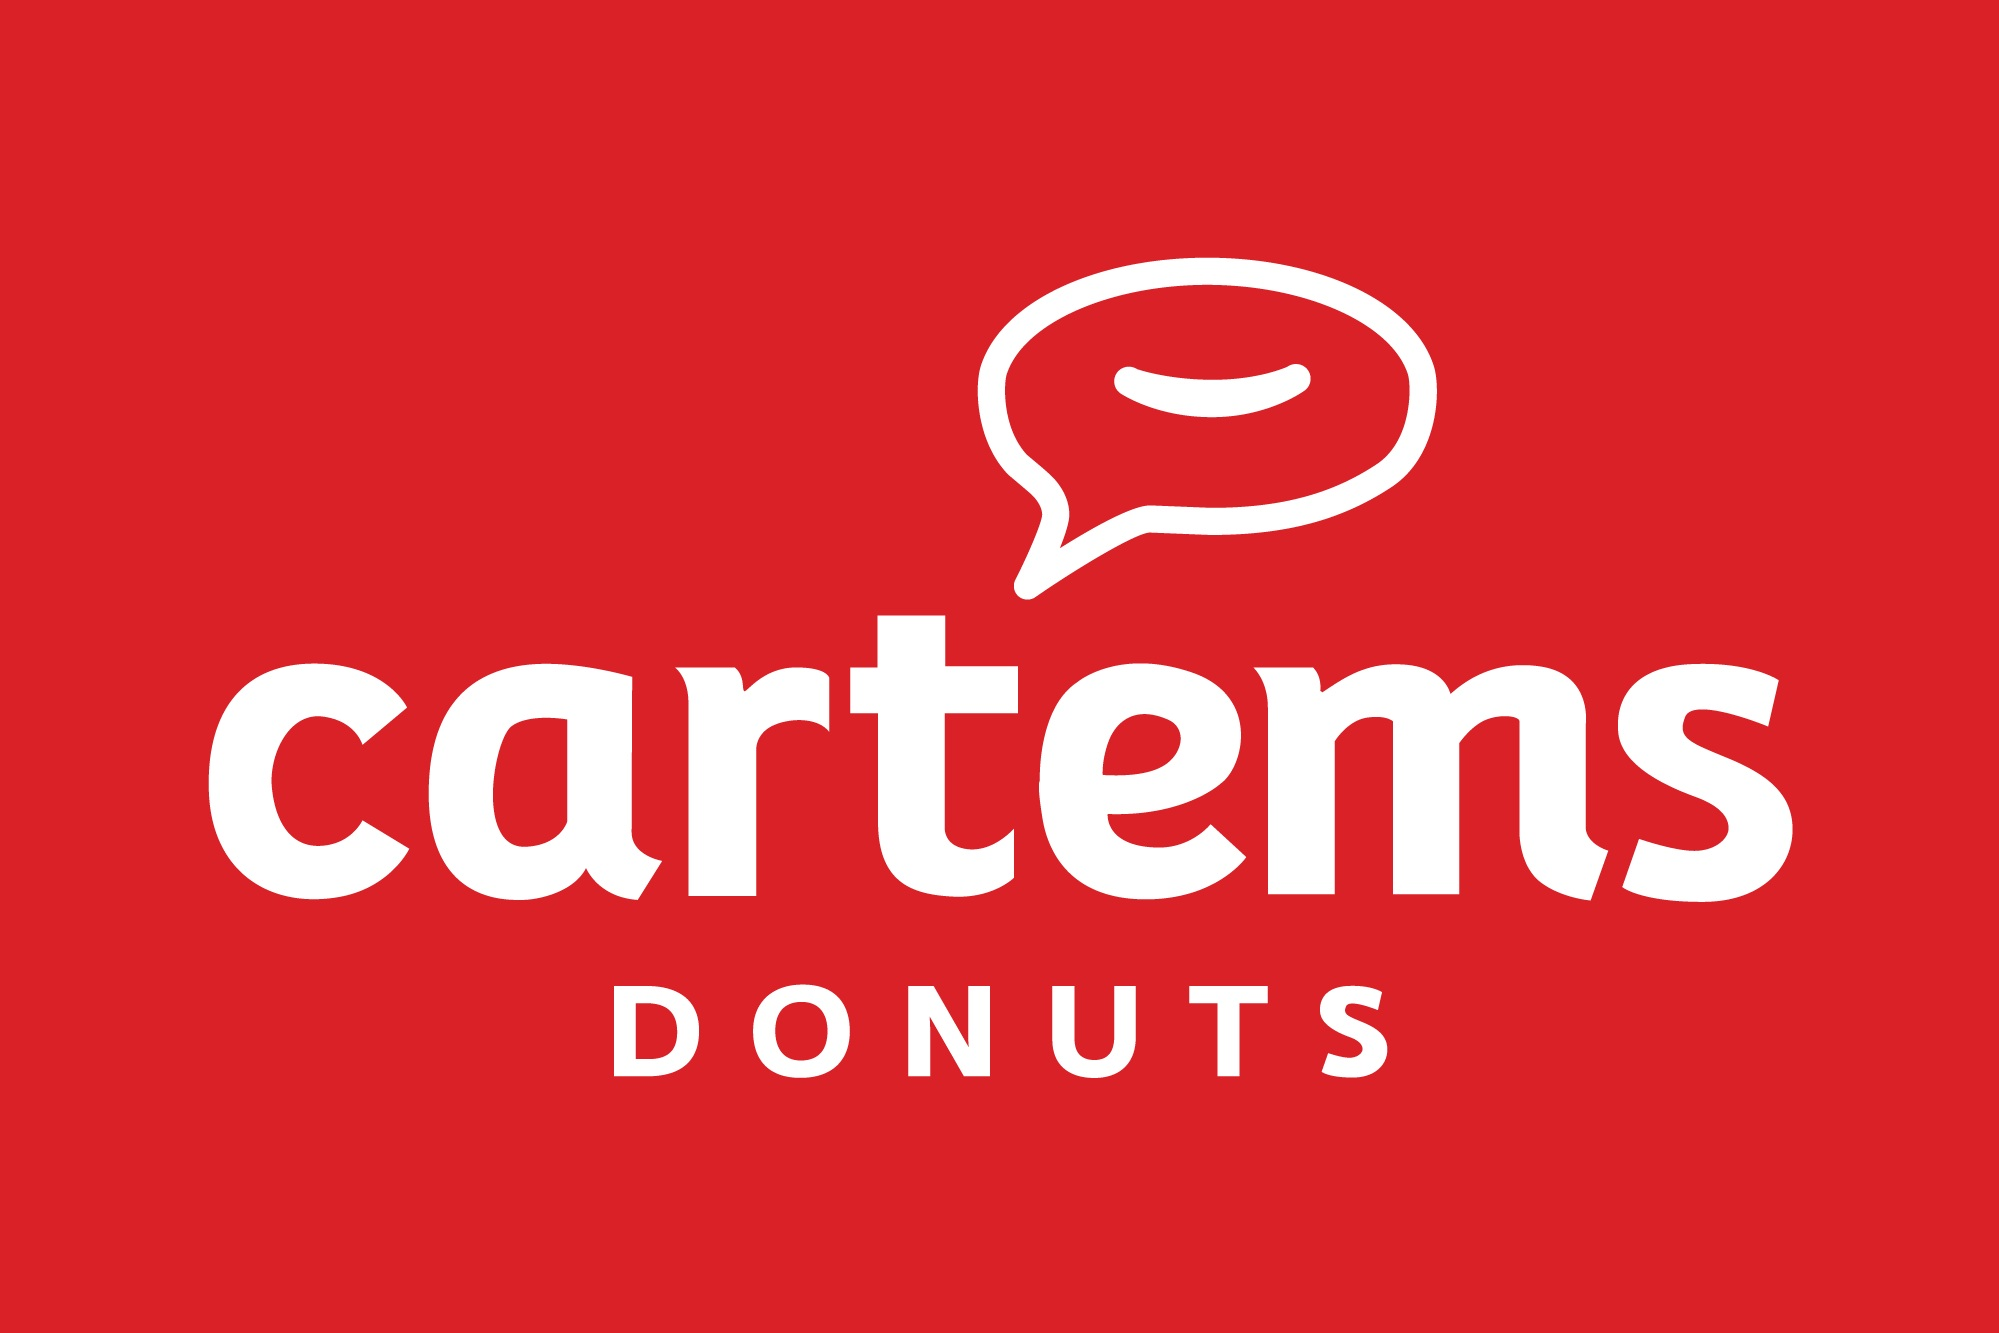 Cartems-Donuts-Full-Logo-%28white-on-red%29LRG.jpg